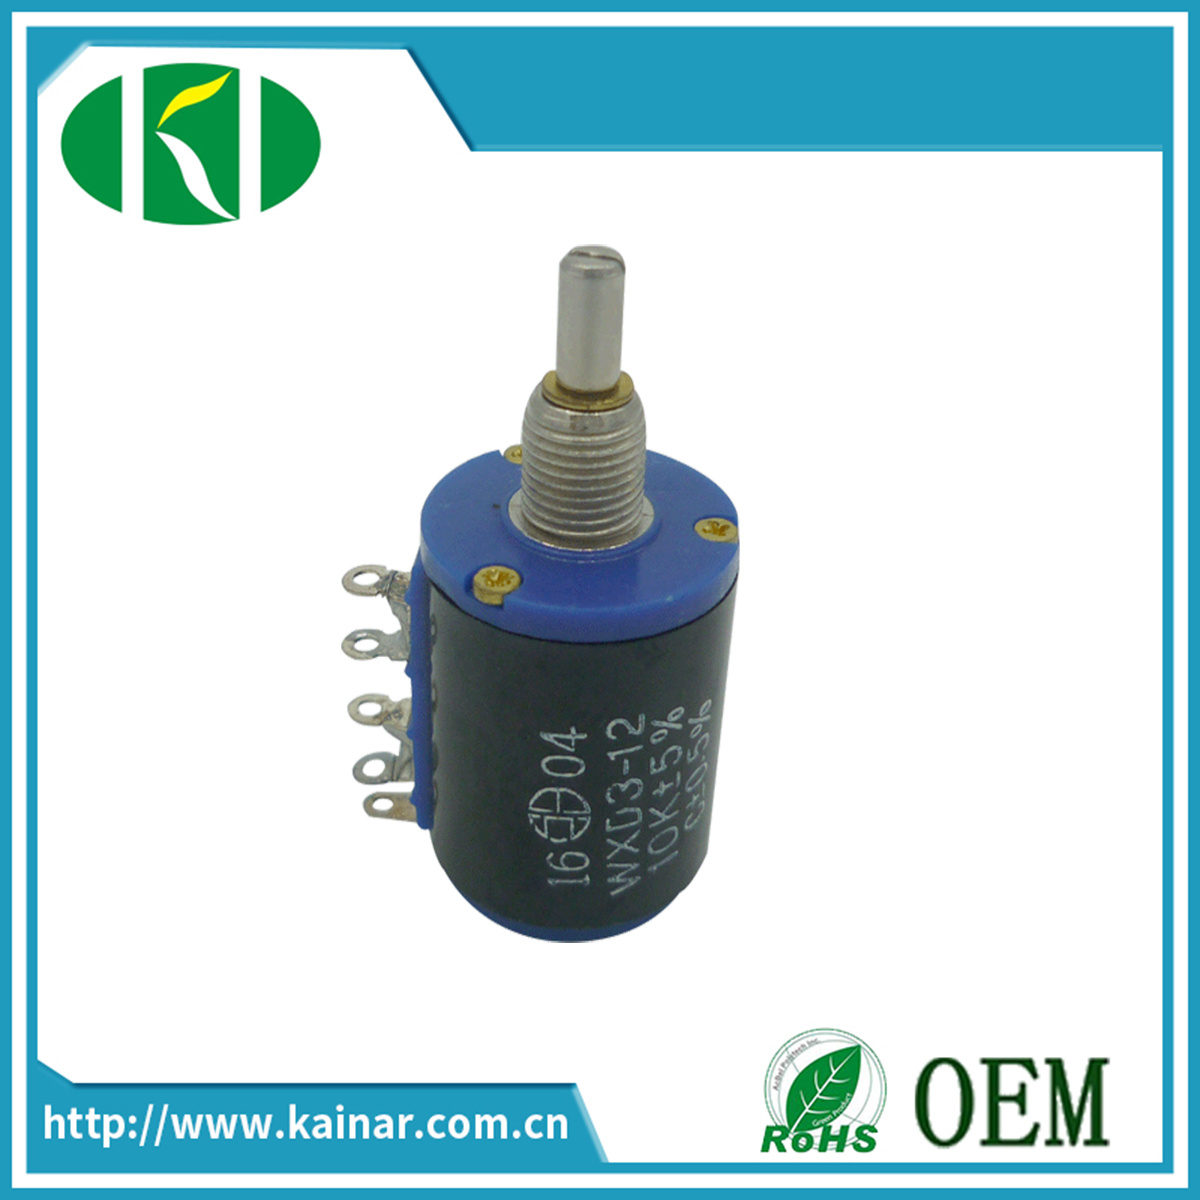 Wxd3-12 5 Turns Precision Wirewound Potentiometer